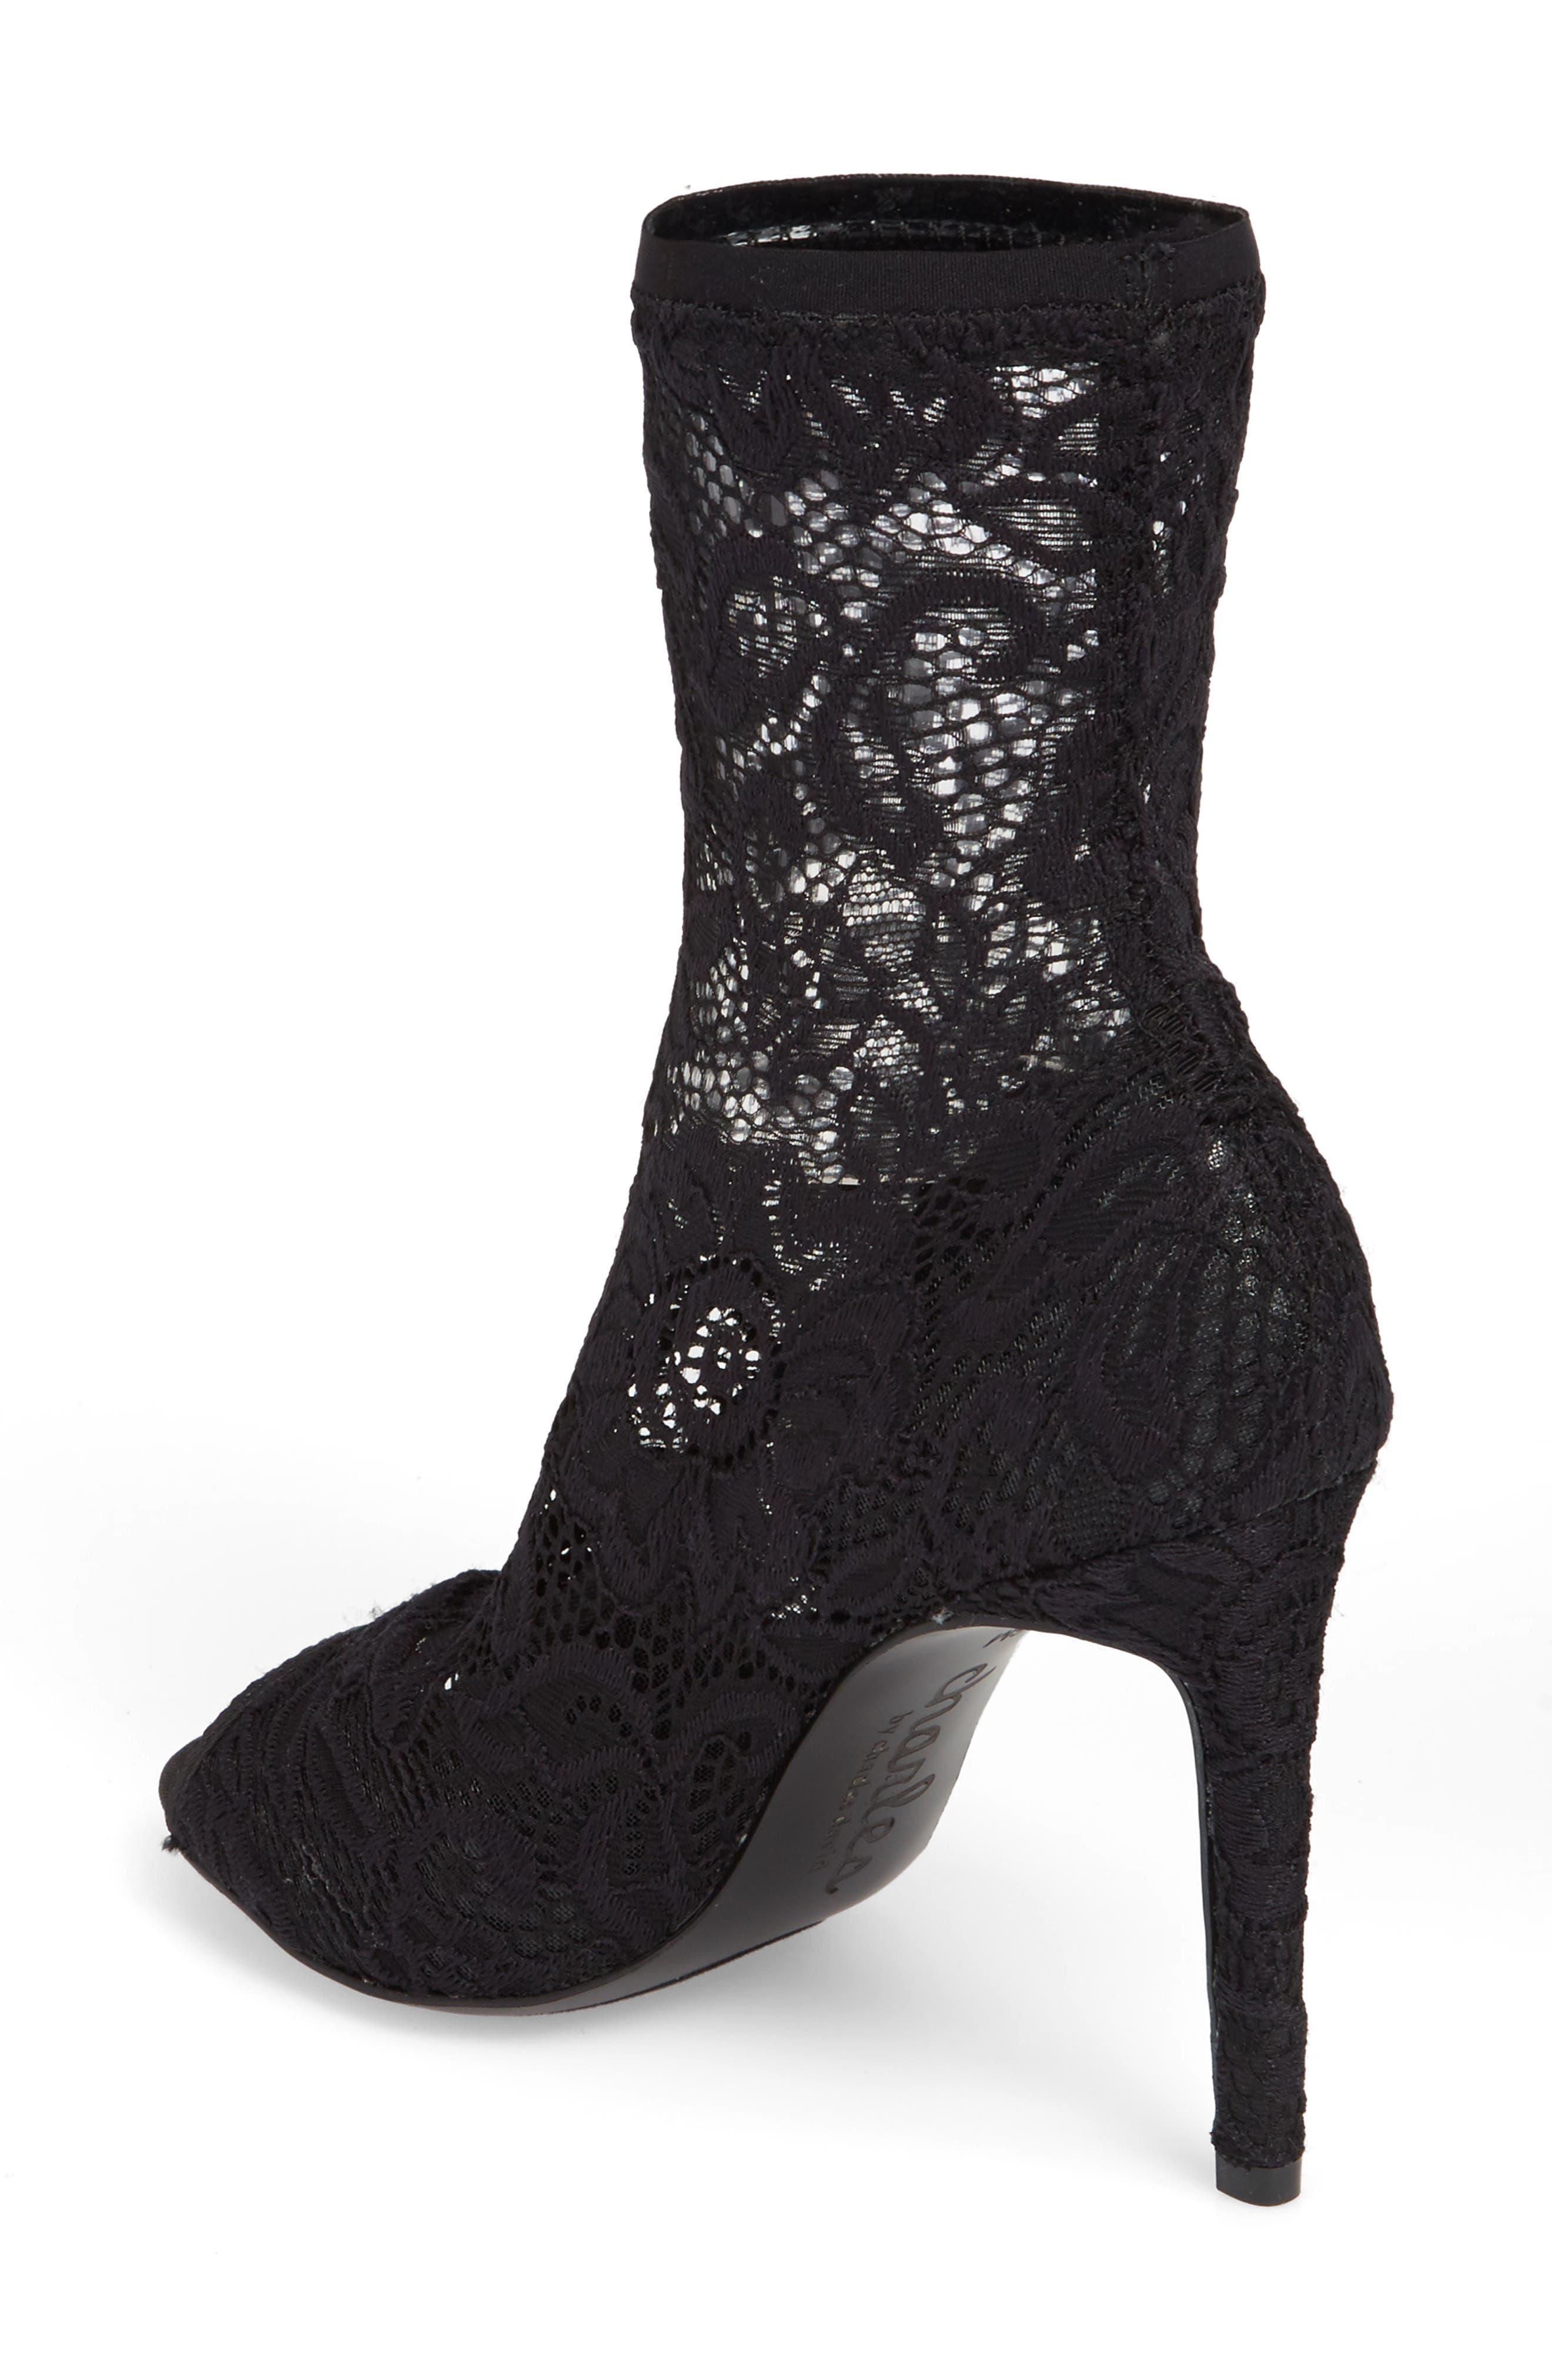 Imaginary Lace Sock Bootie,                             Alternate thumbnail 2, color,                             BLACK FABRIC